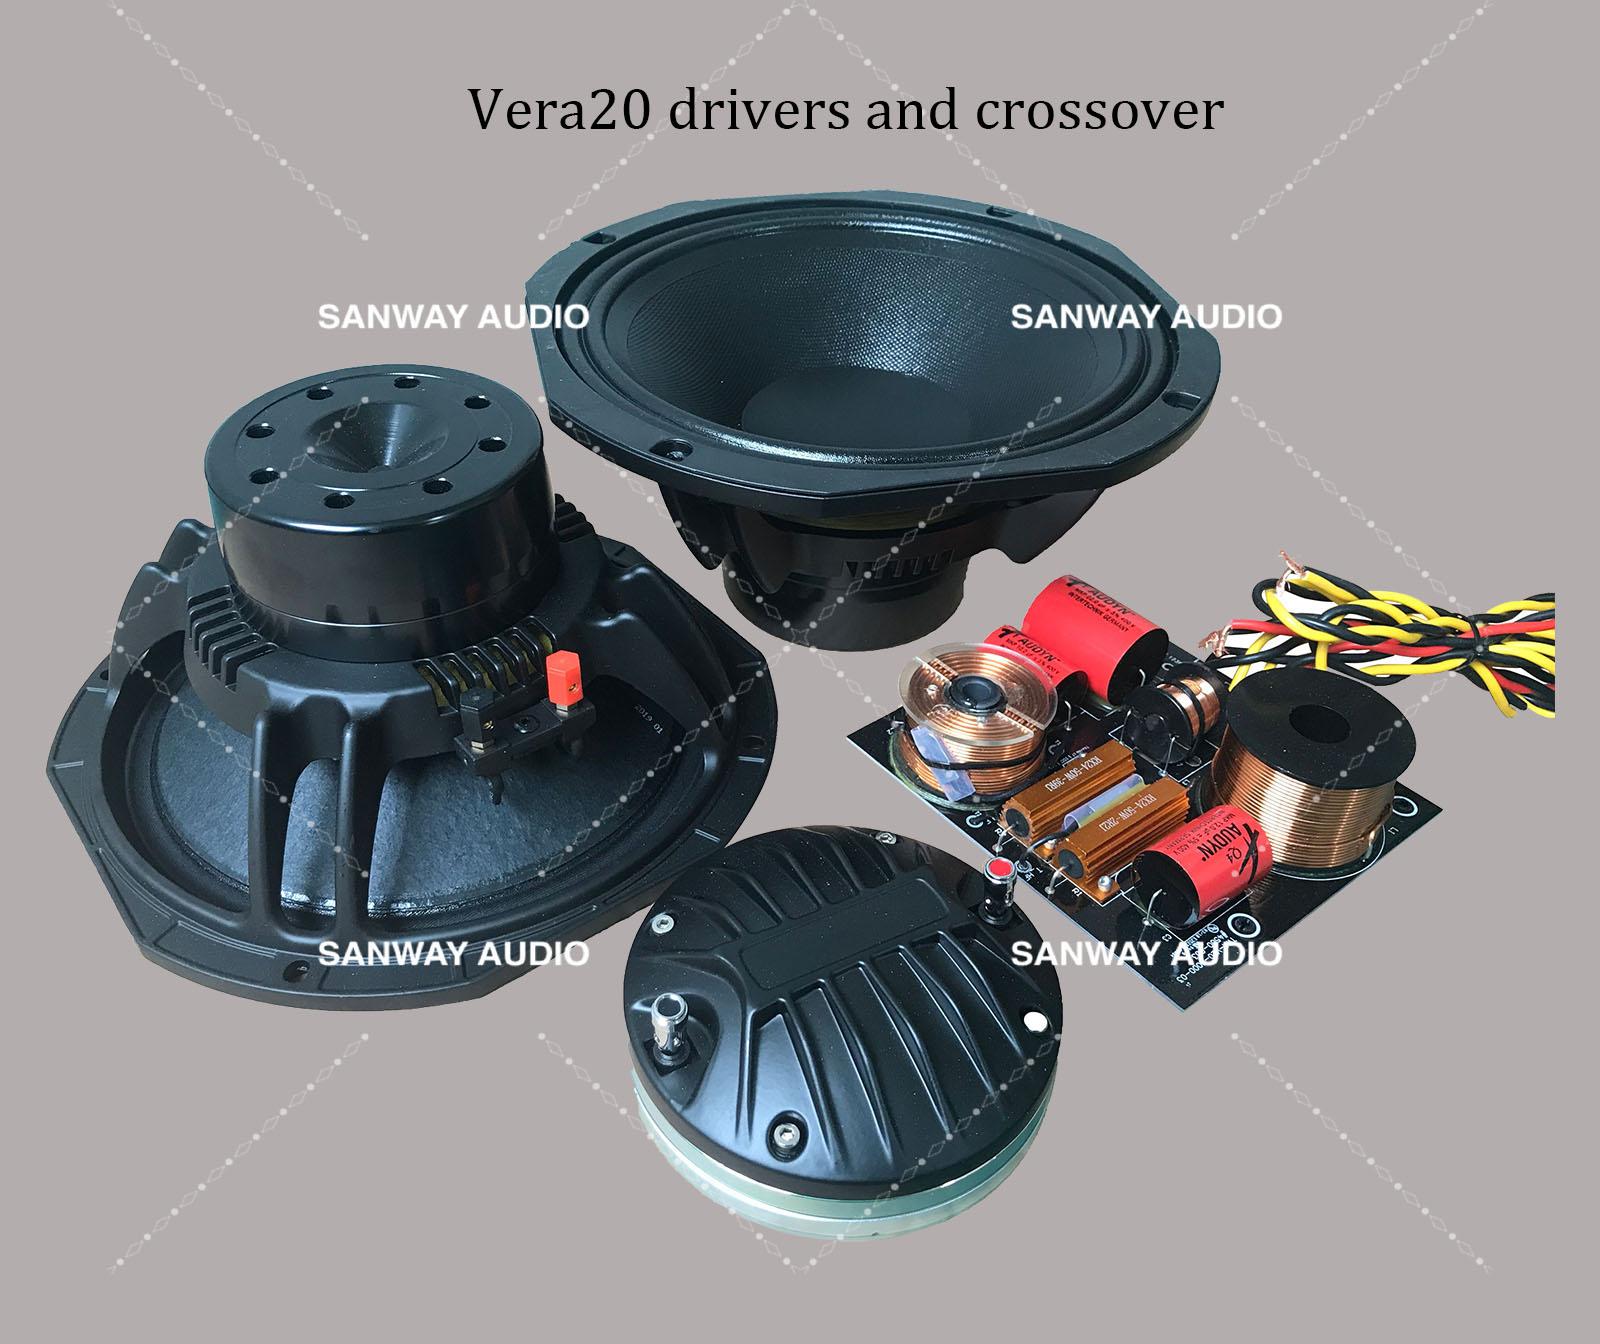 VERA20 drivers and crossover